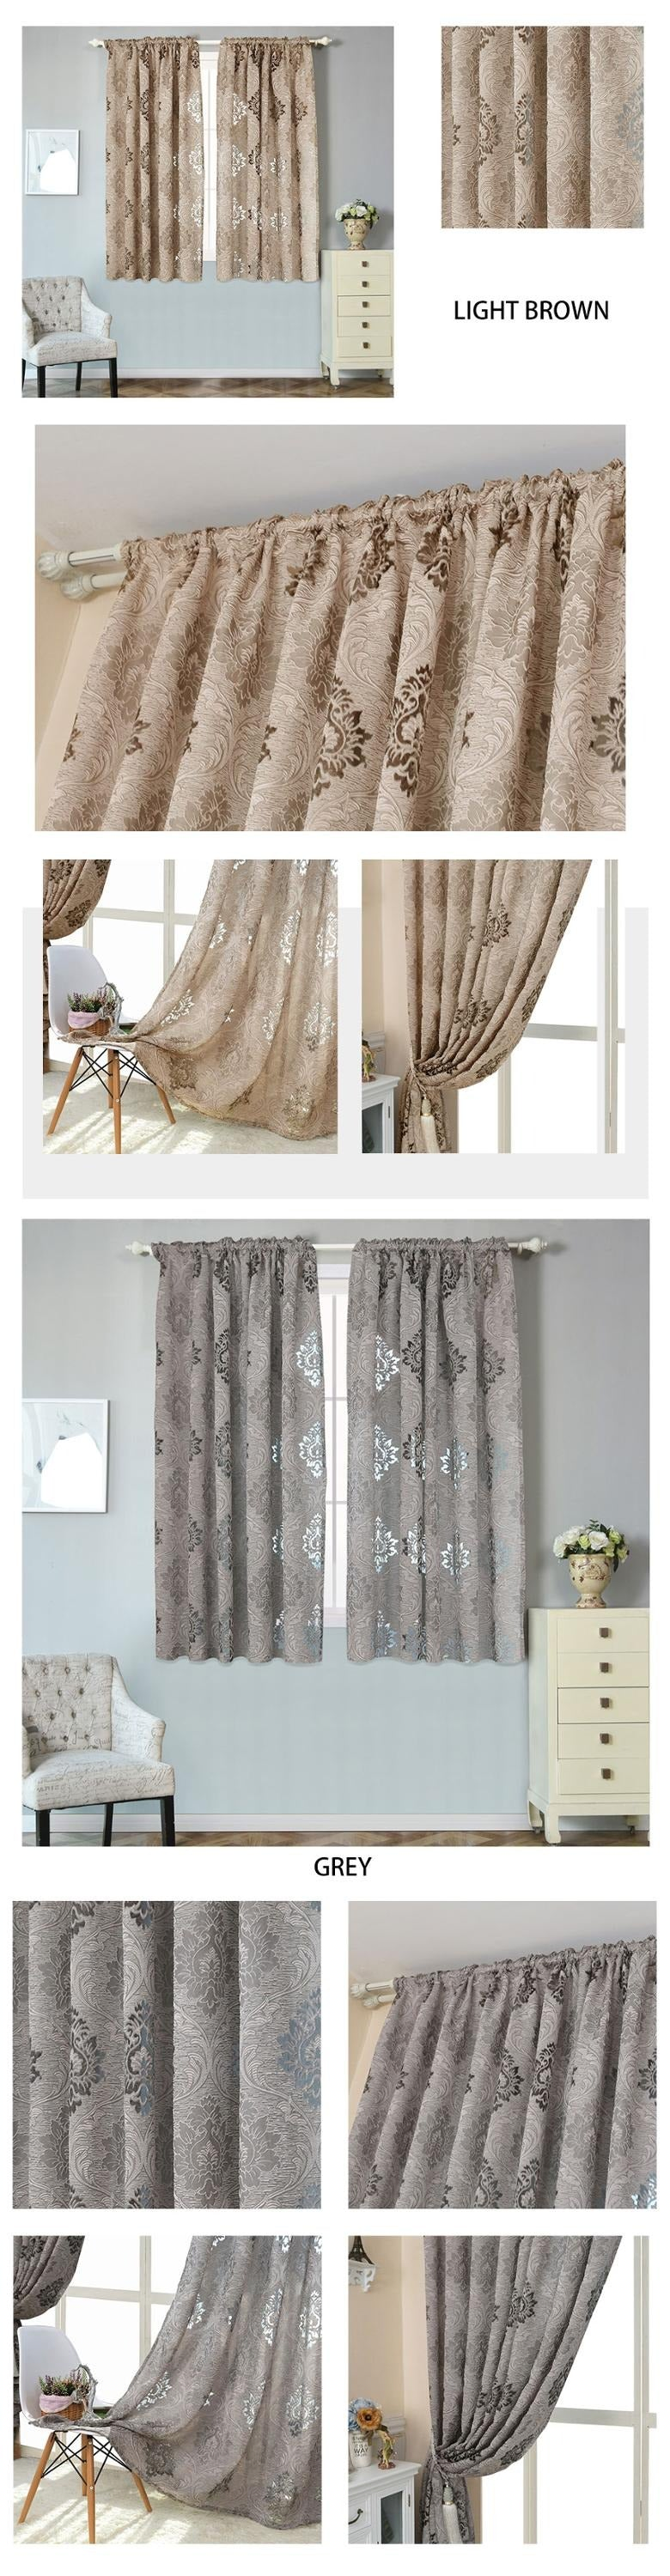 Kitchen Curtains Grey Short Window Curtains Fabrics For Christmas Rustic Decorative